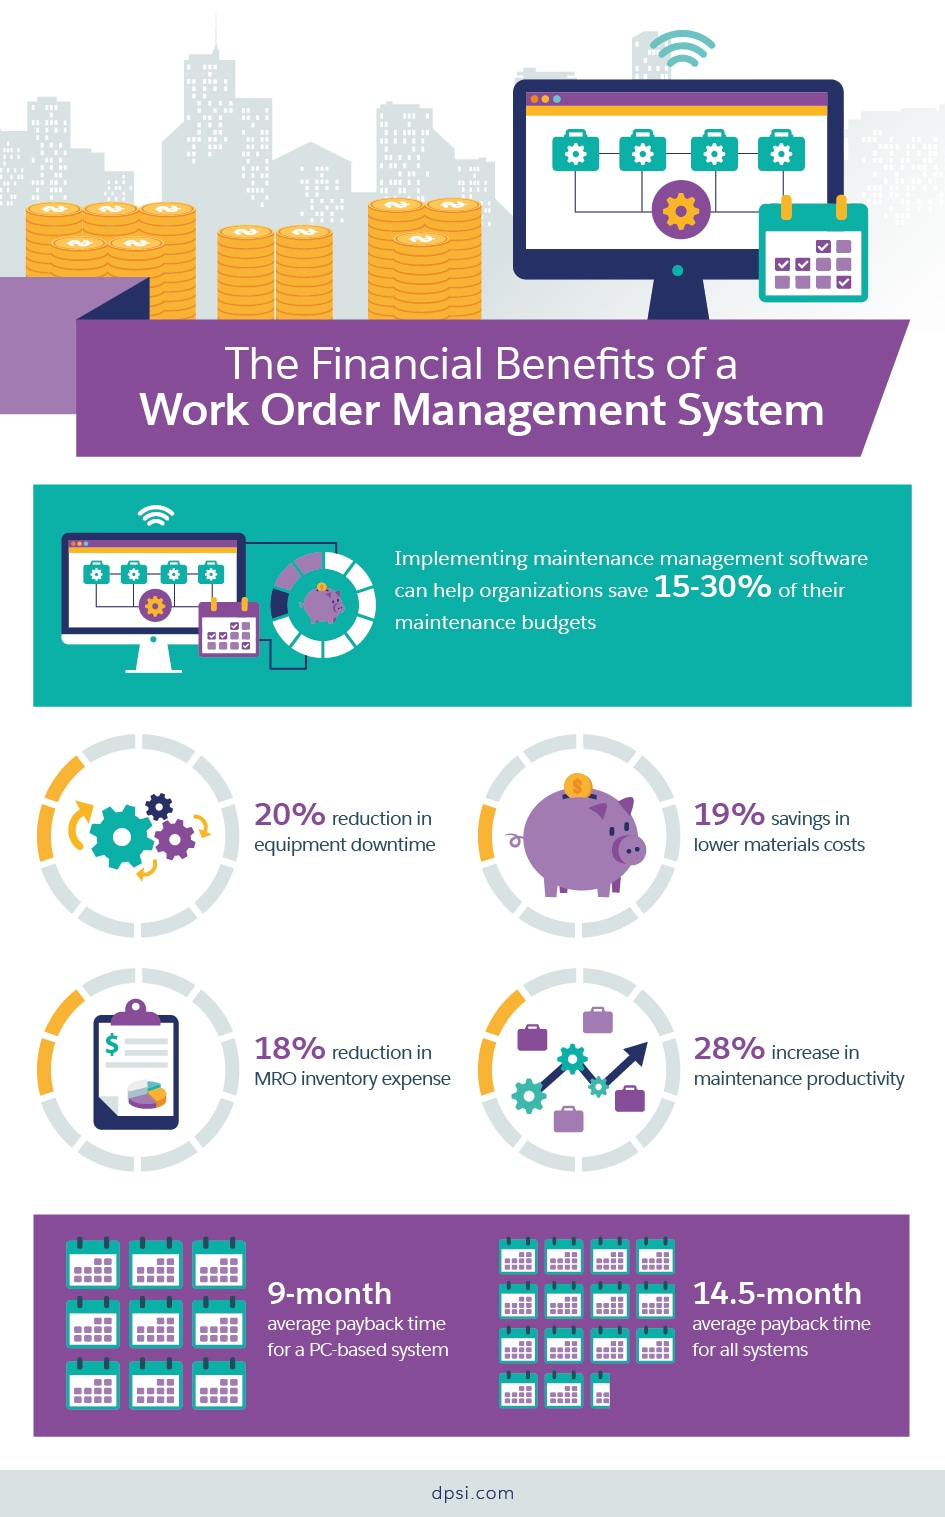 The Financial Benefits of a Work Order Management System